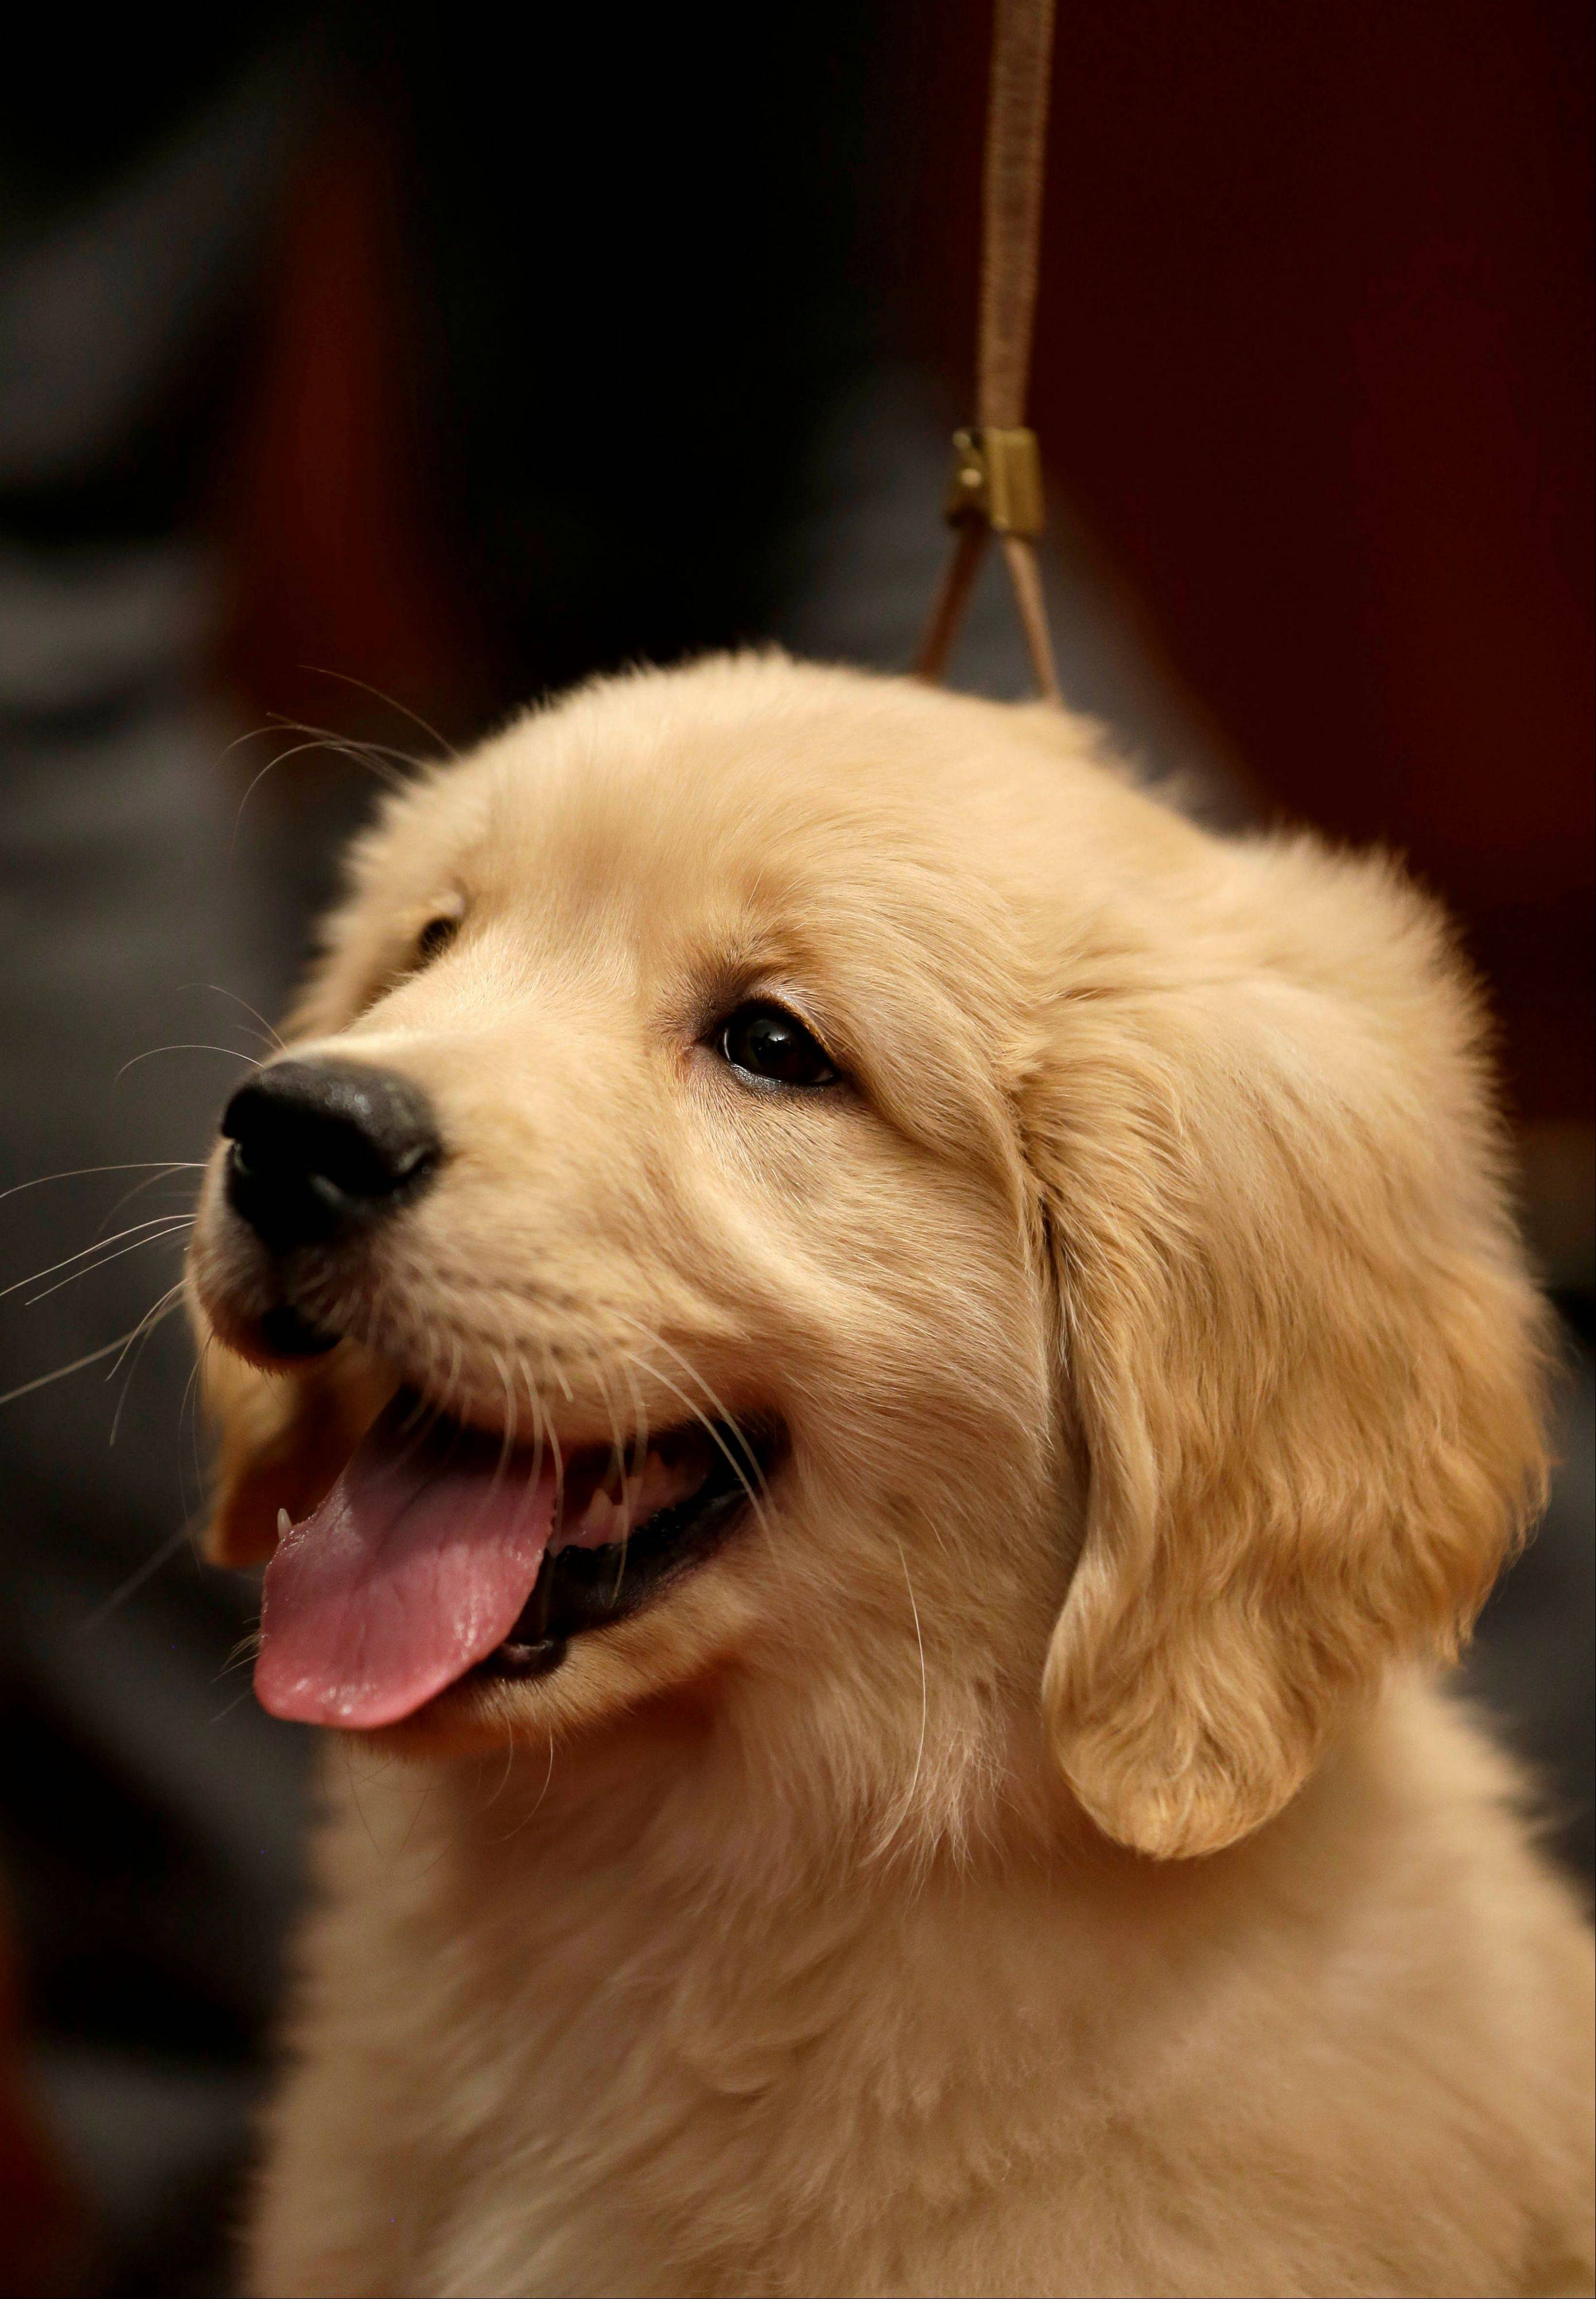 A golden retriever puppy named Gibbs attends a news conference at the American Kennel Club in New York. The club announced their list of the most popular dog breeds in 2012, where the golden retriever remains one of the top five most popular dogs.